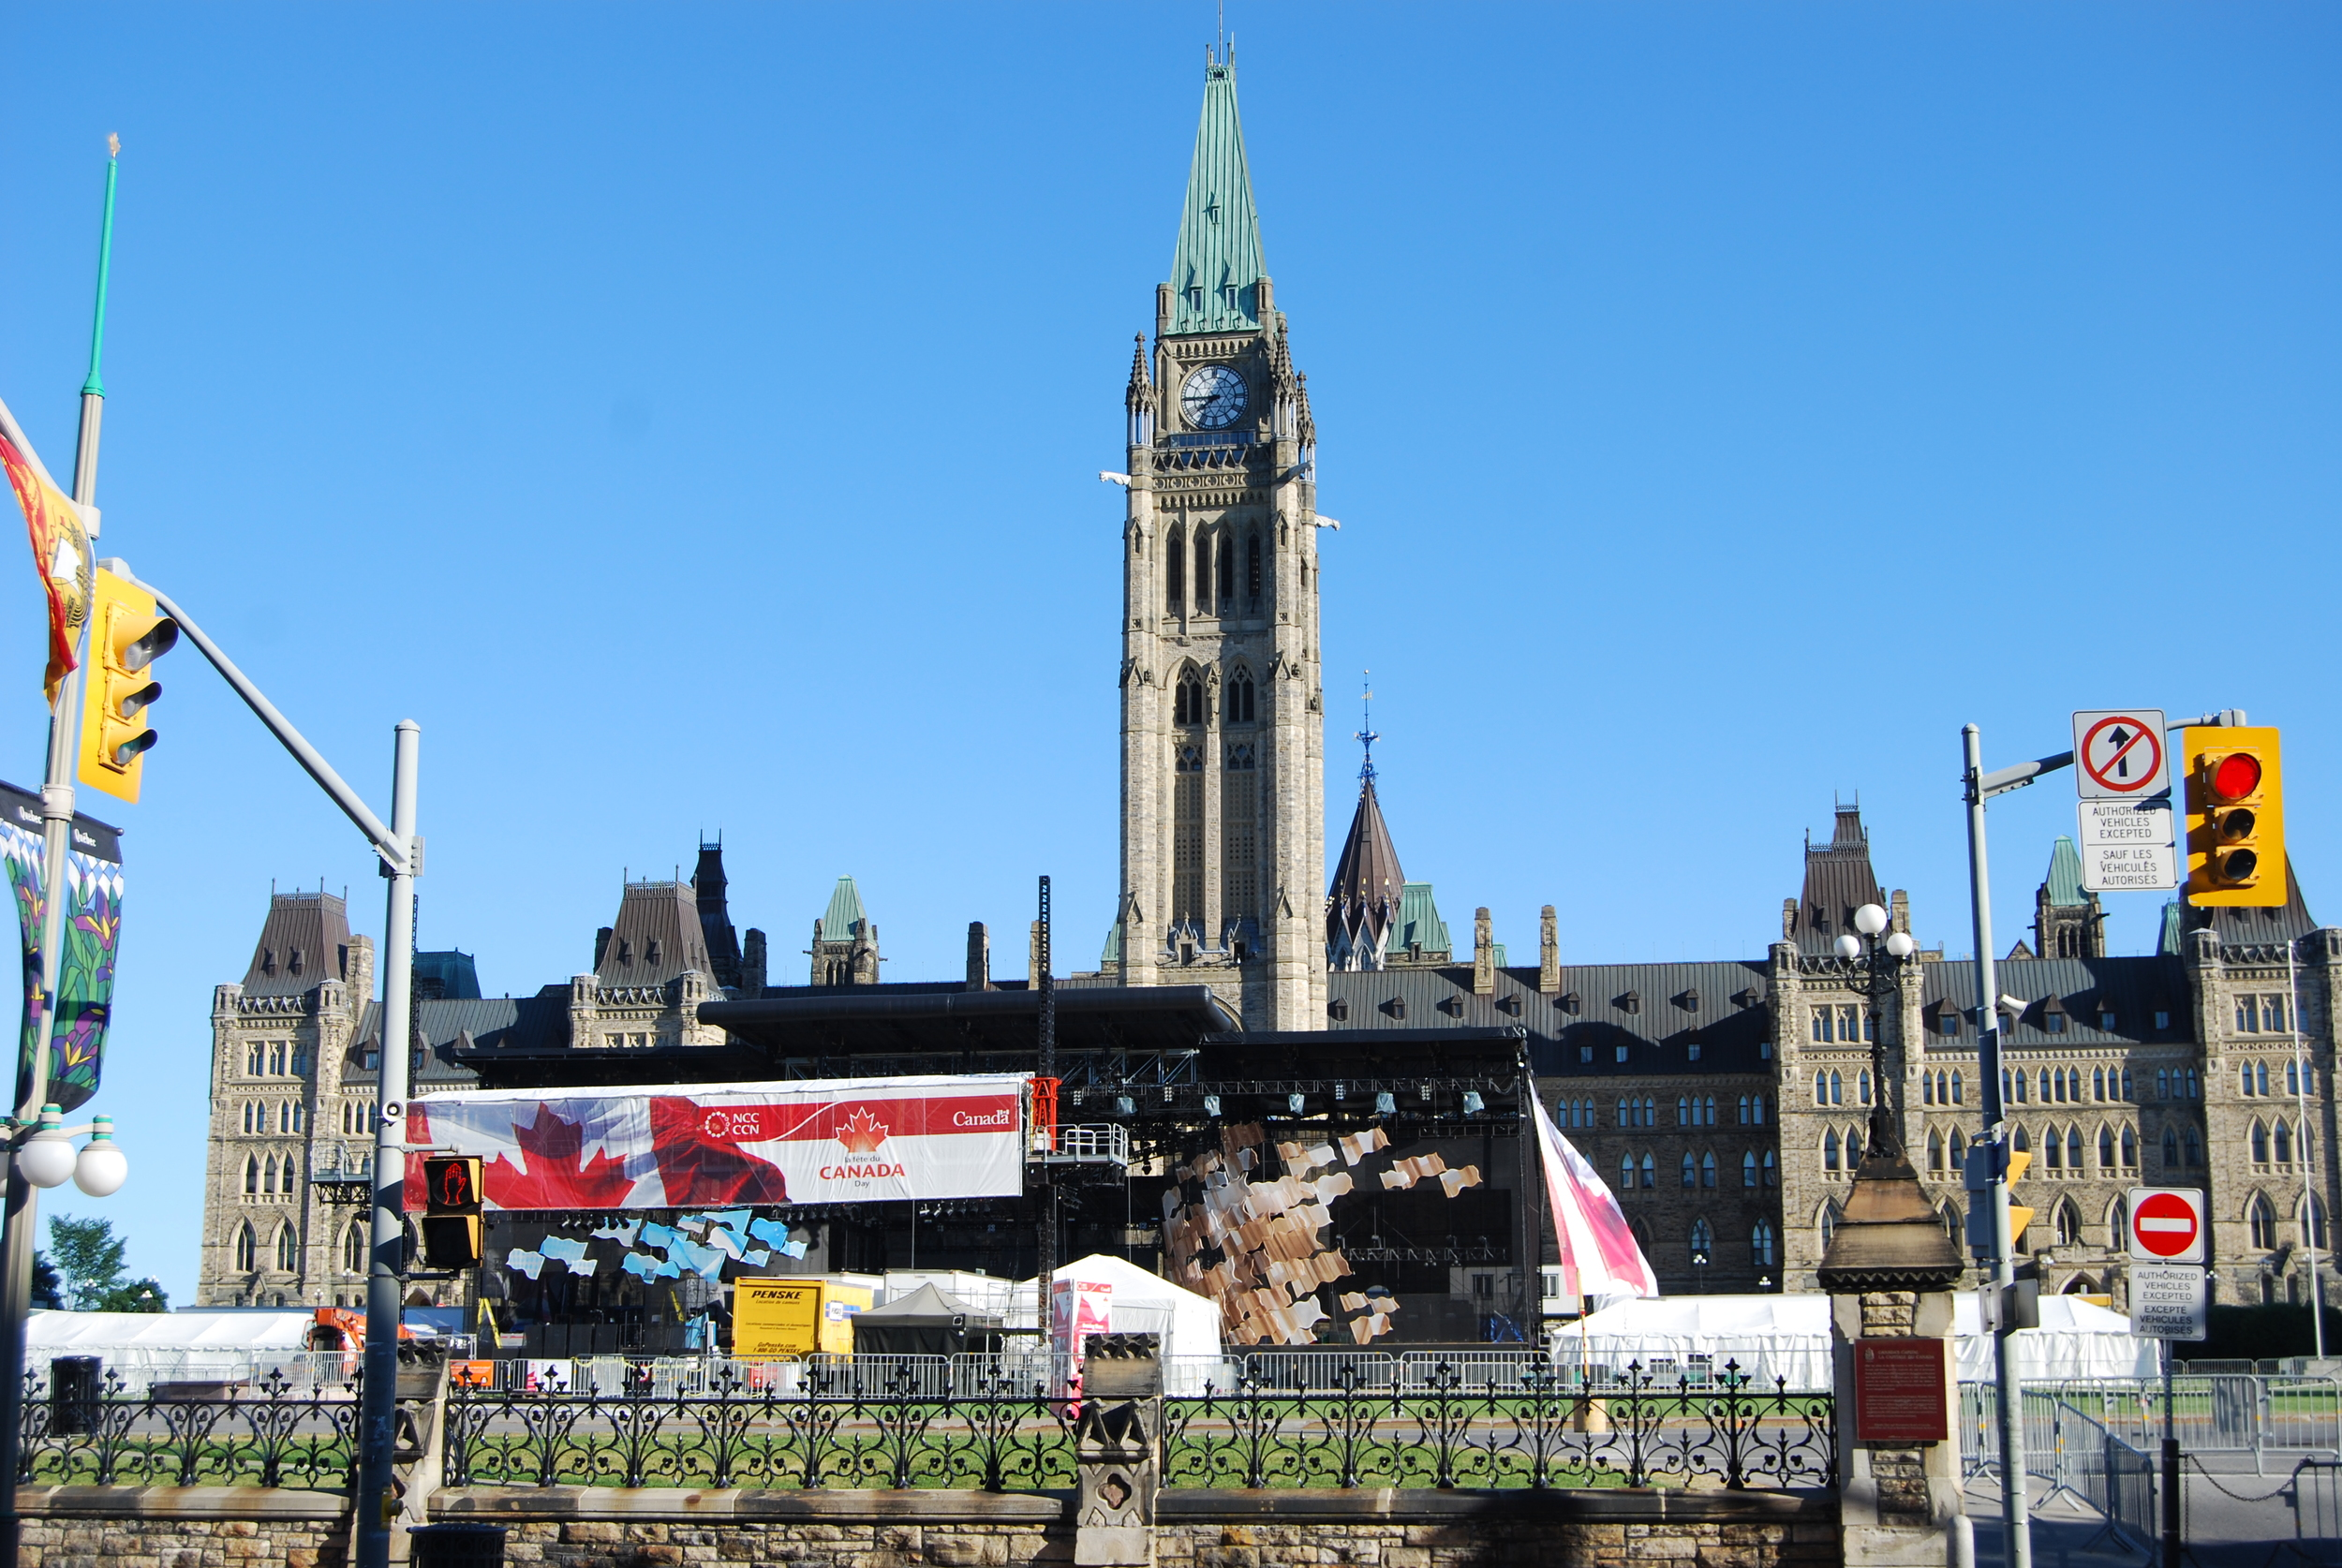 A lovely day for the December 30, 1941 speech to depart Canada's Parliament